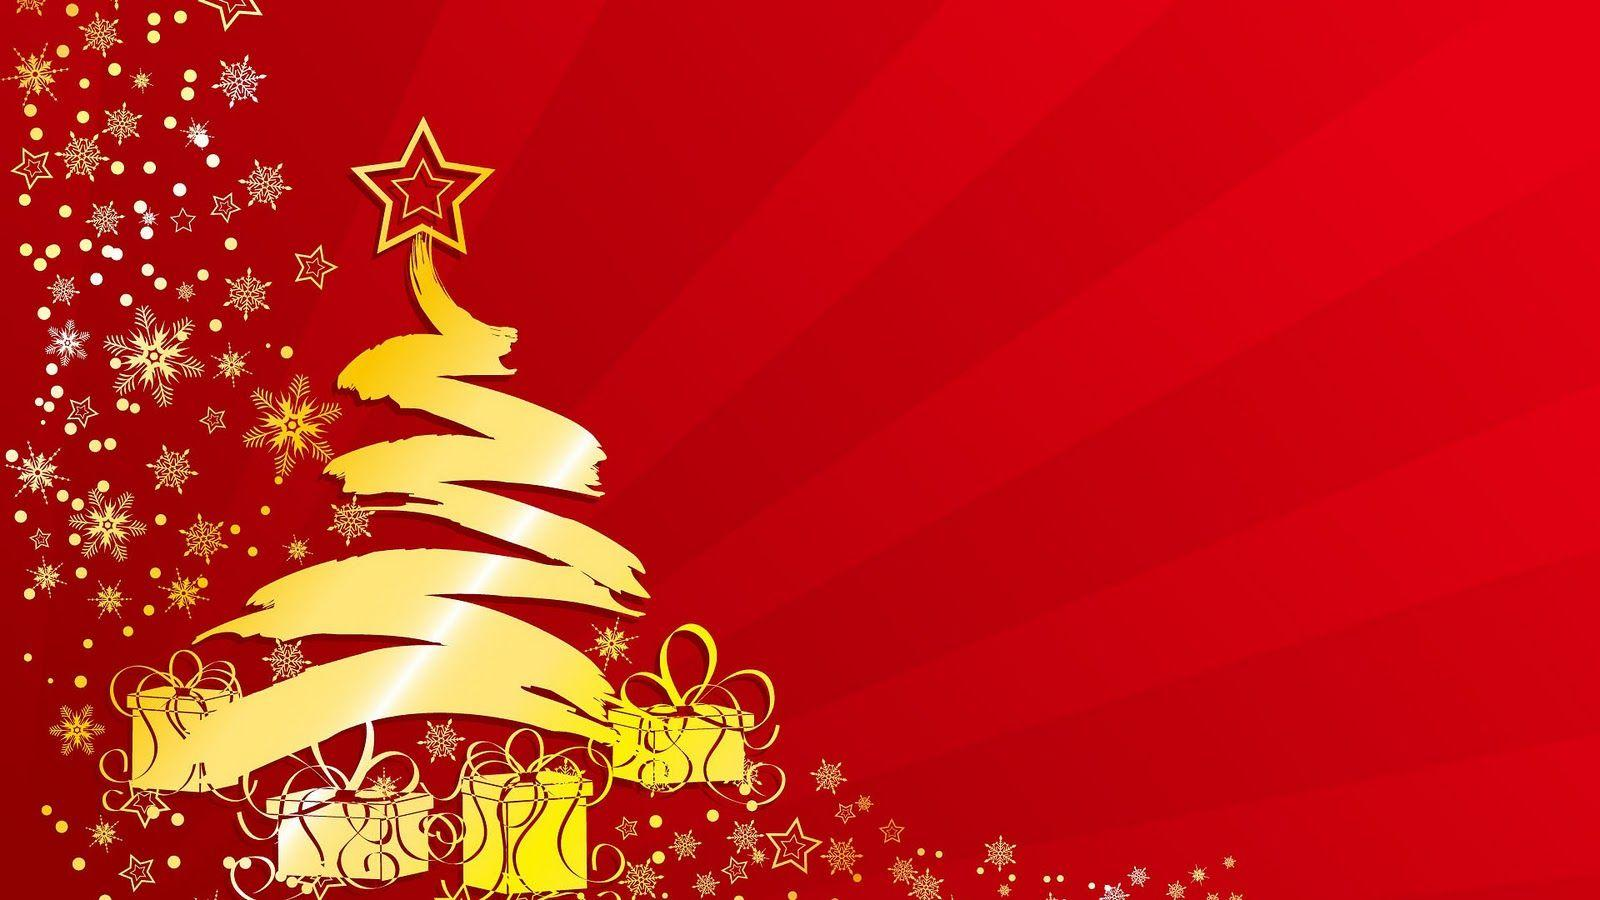 Christmas Background Hd Images.Christmas Background Images Wallpaper Cave